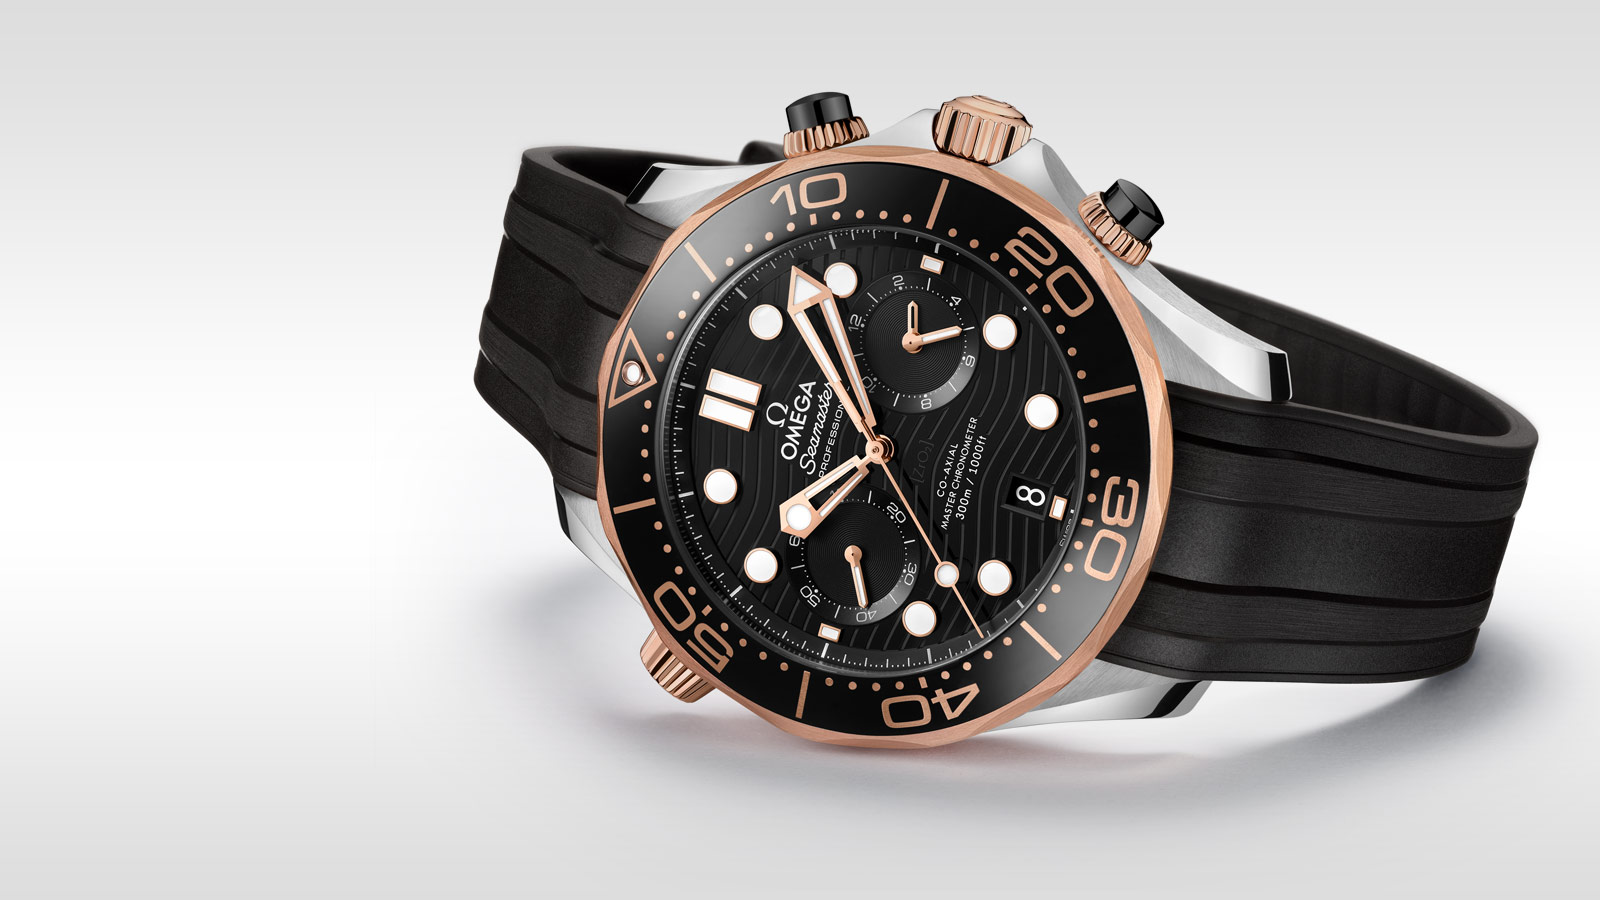 Seamaster ダイバー 300M Diver 300M Omega Co‑Axial Master Chronometer Chronograph 44 mm - 210.22.44.51.01.001 - ビュー 2